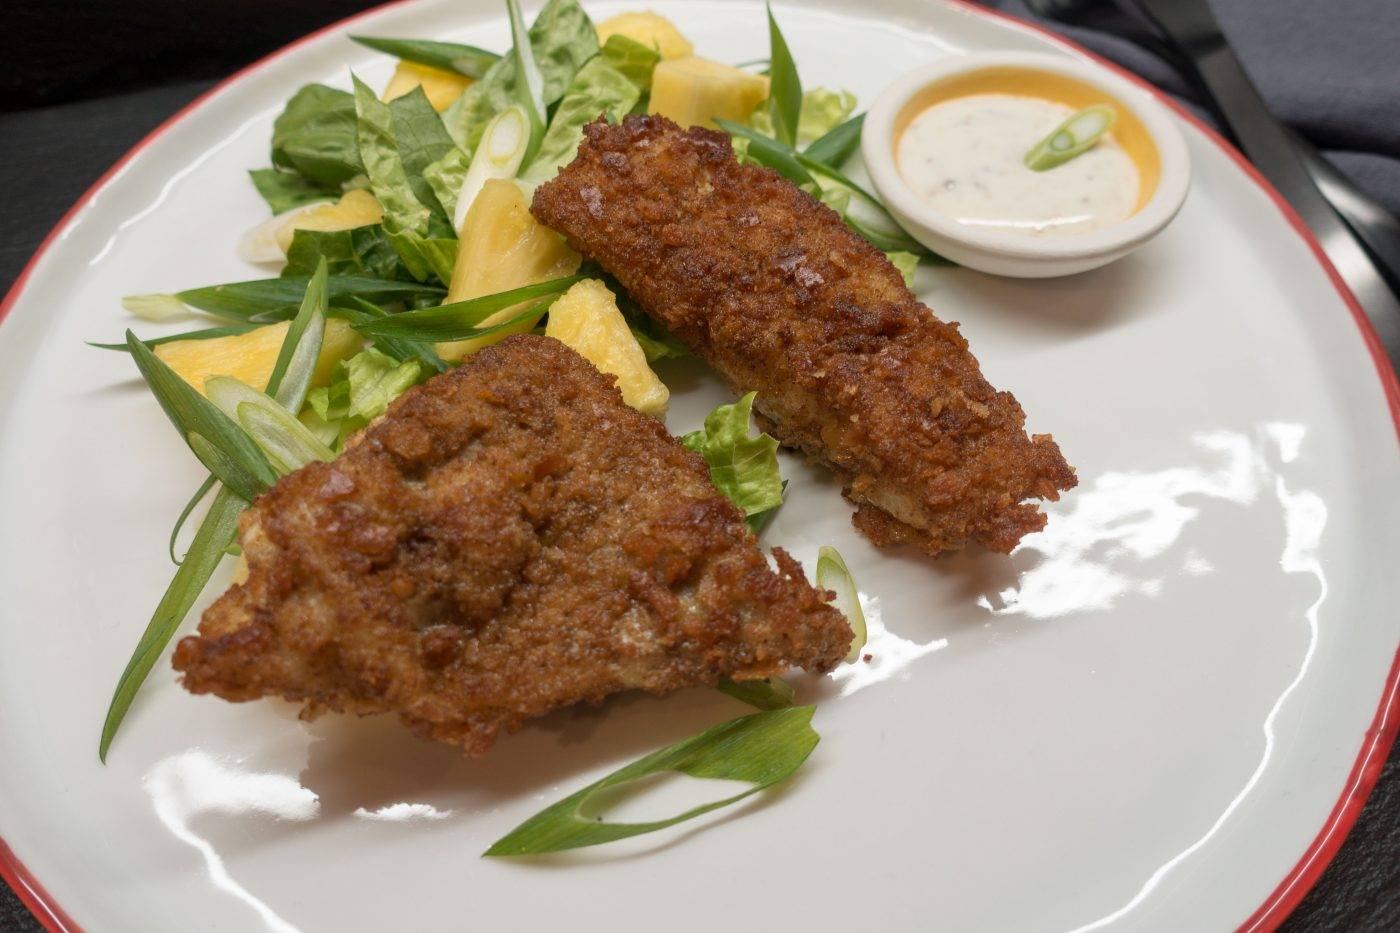 Crispy pollack fillet with salad